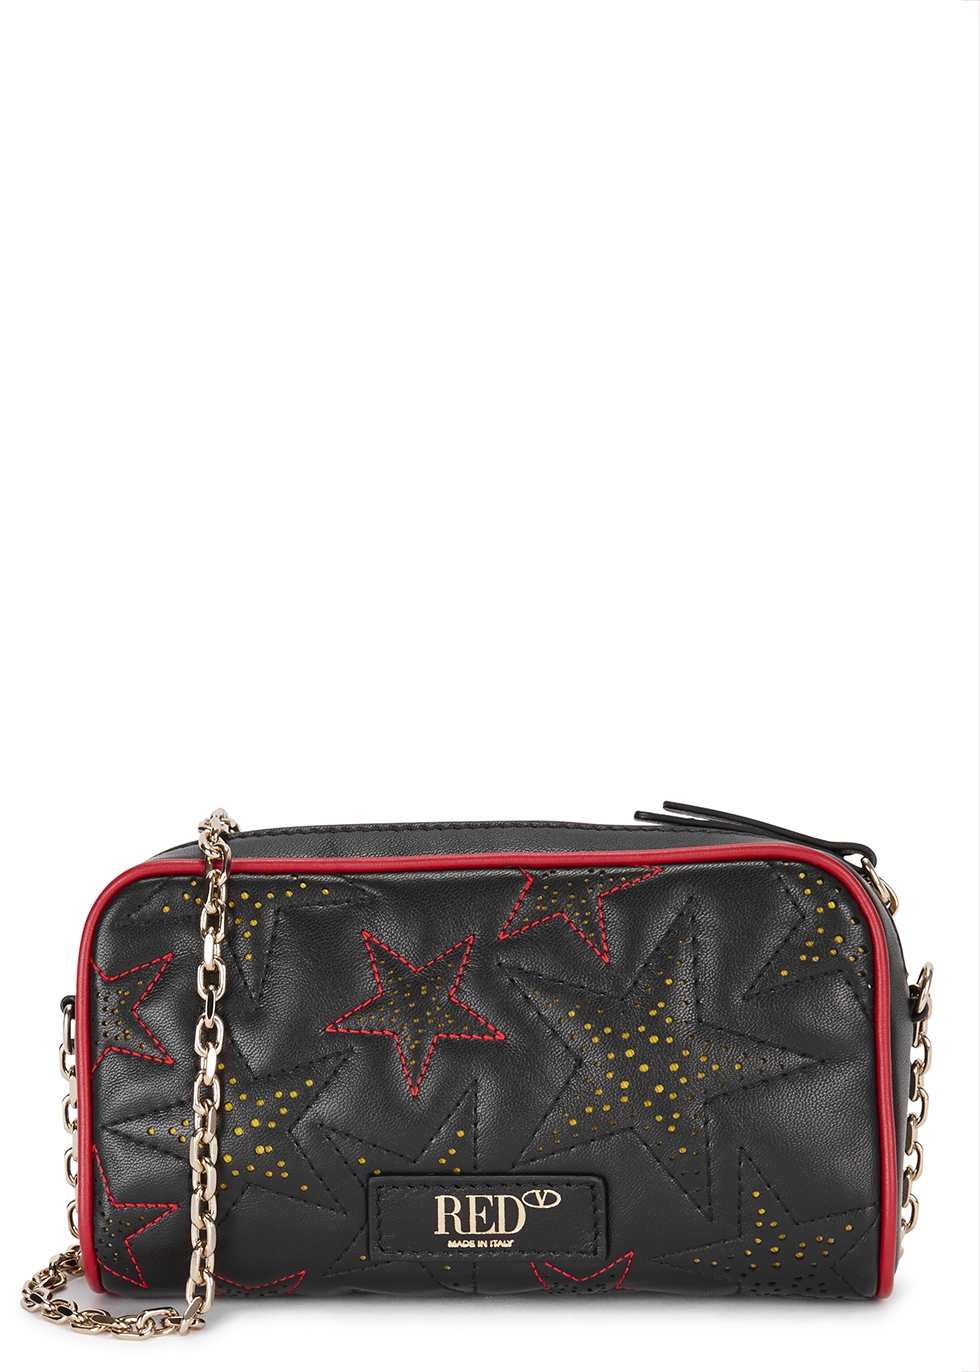 RED V Star-Embossed Leather Cross-Body Bag in Black And Red